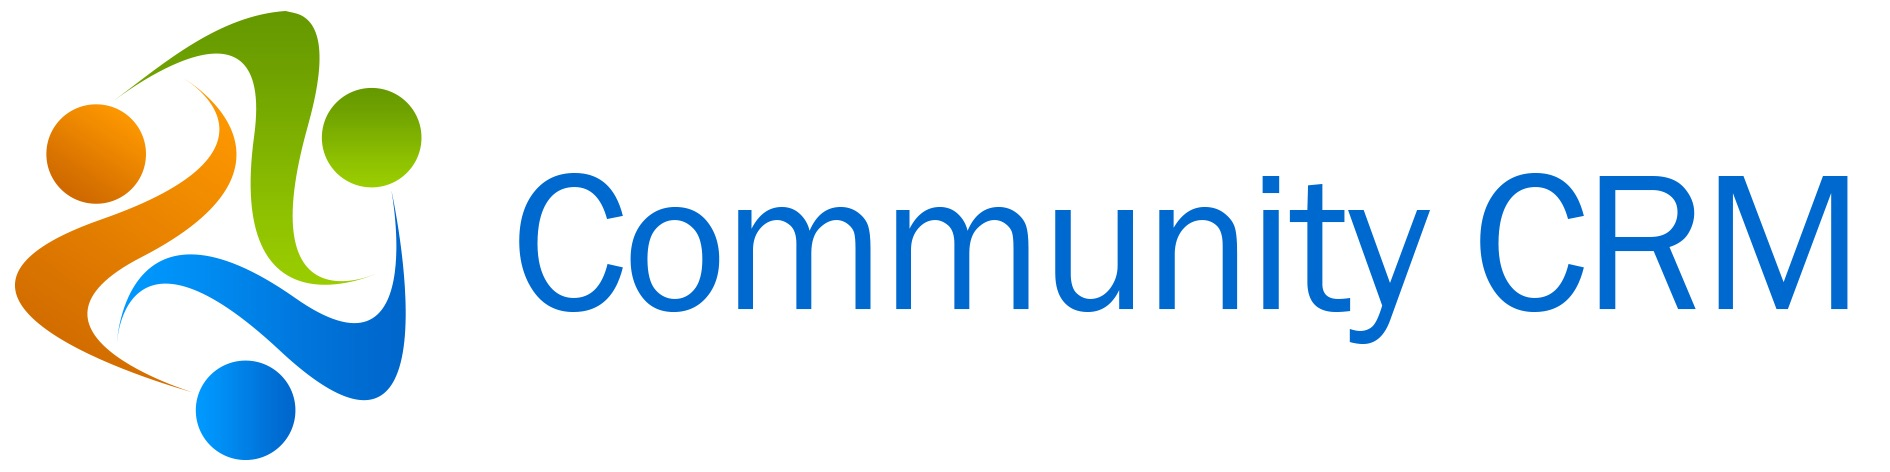 logo for CommunityCRM Pty Ltd